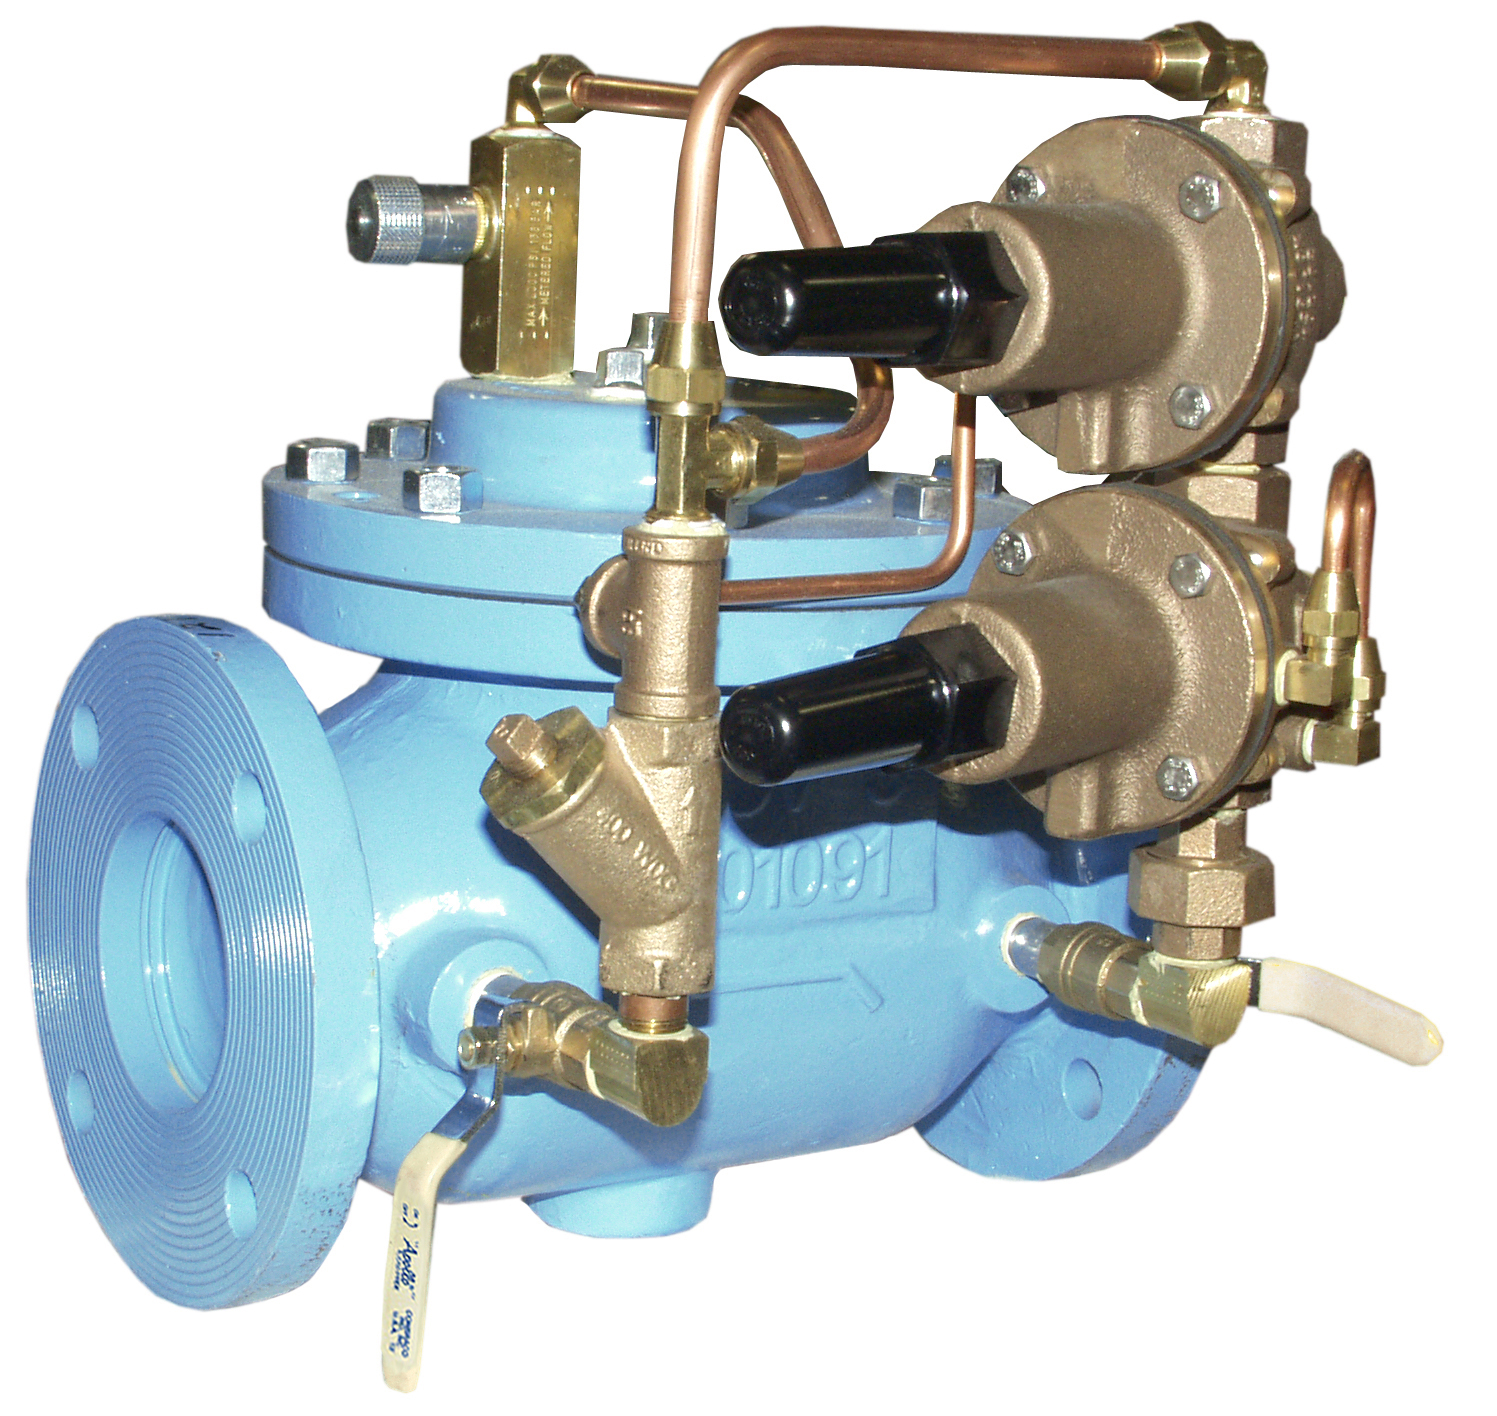 VAN KHAI THÁC MỎ - OCV - MỸ - Model 127-2 Pressure Reducing and Pressure Sustaining Valve